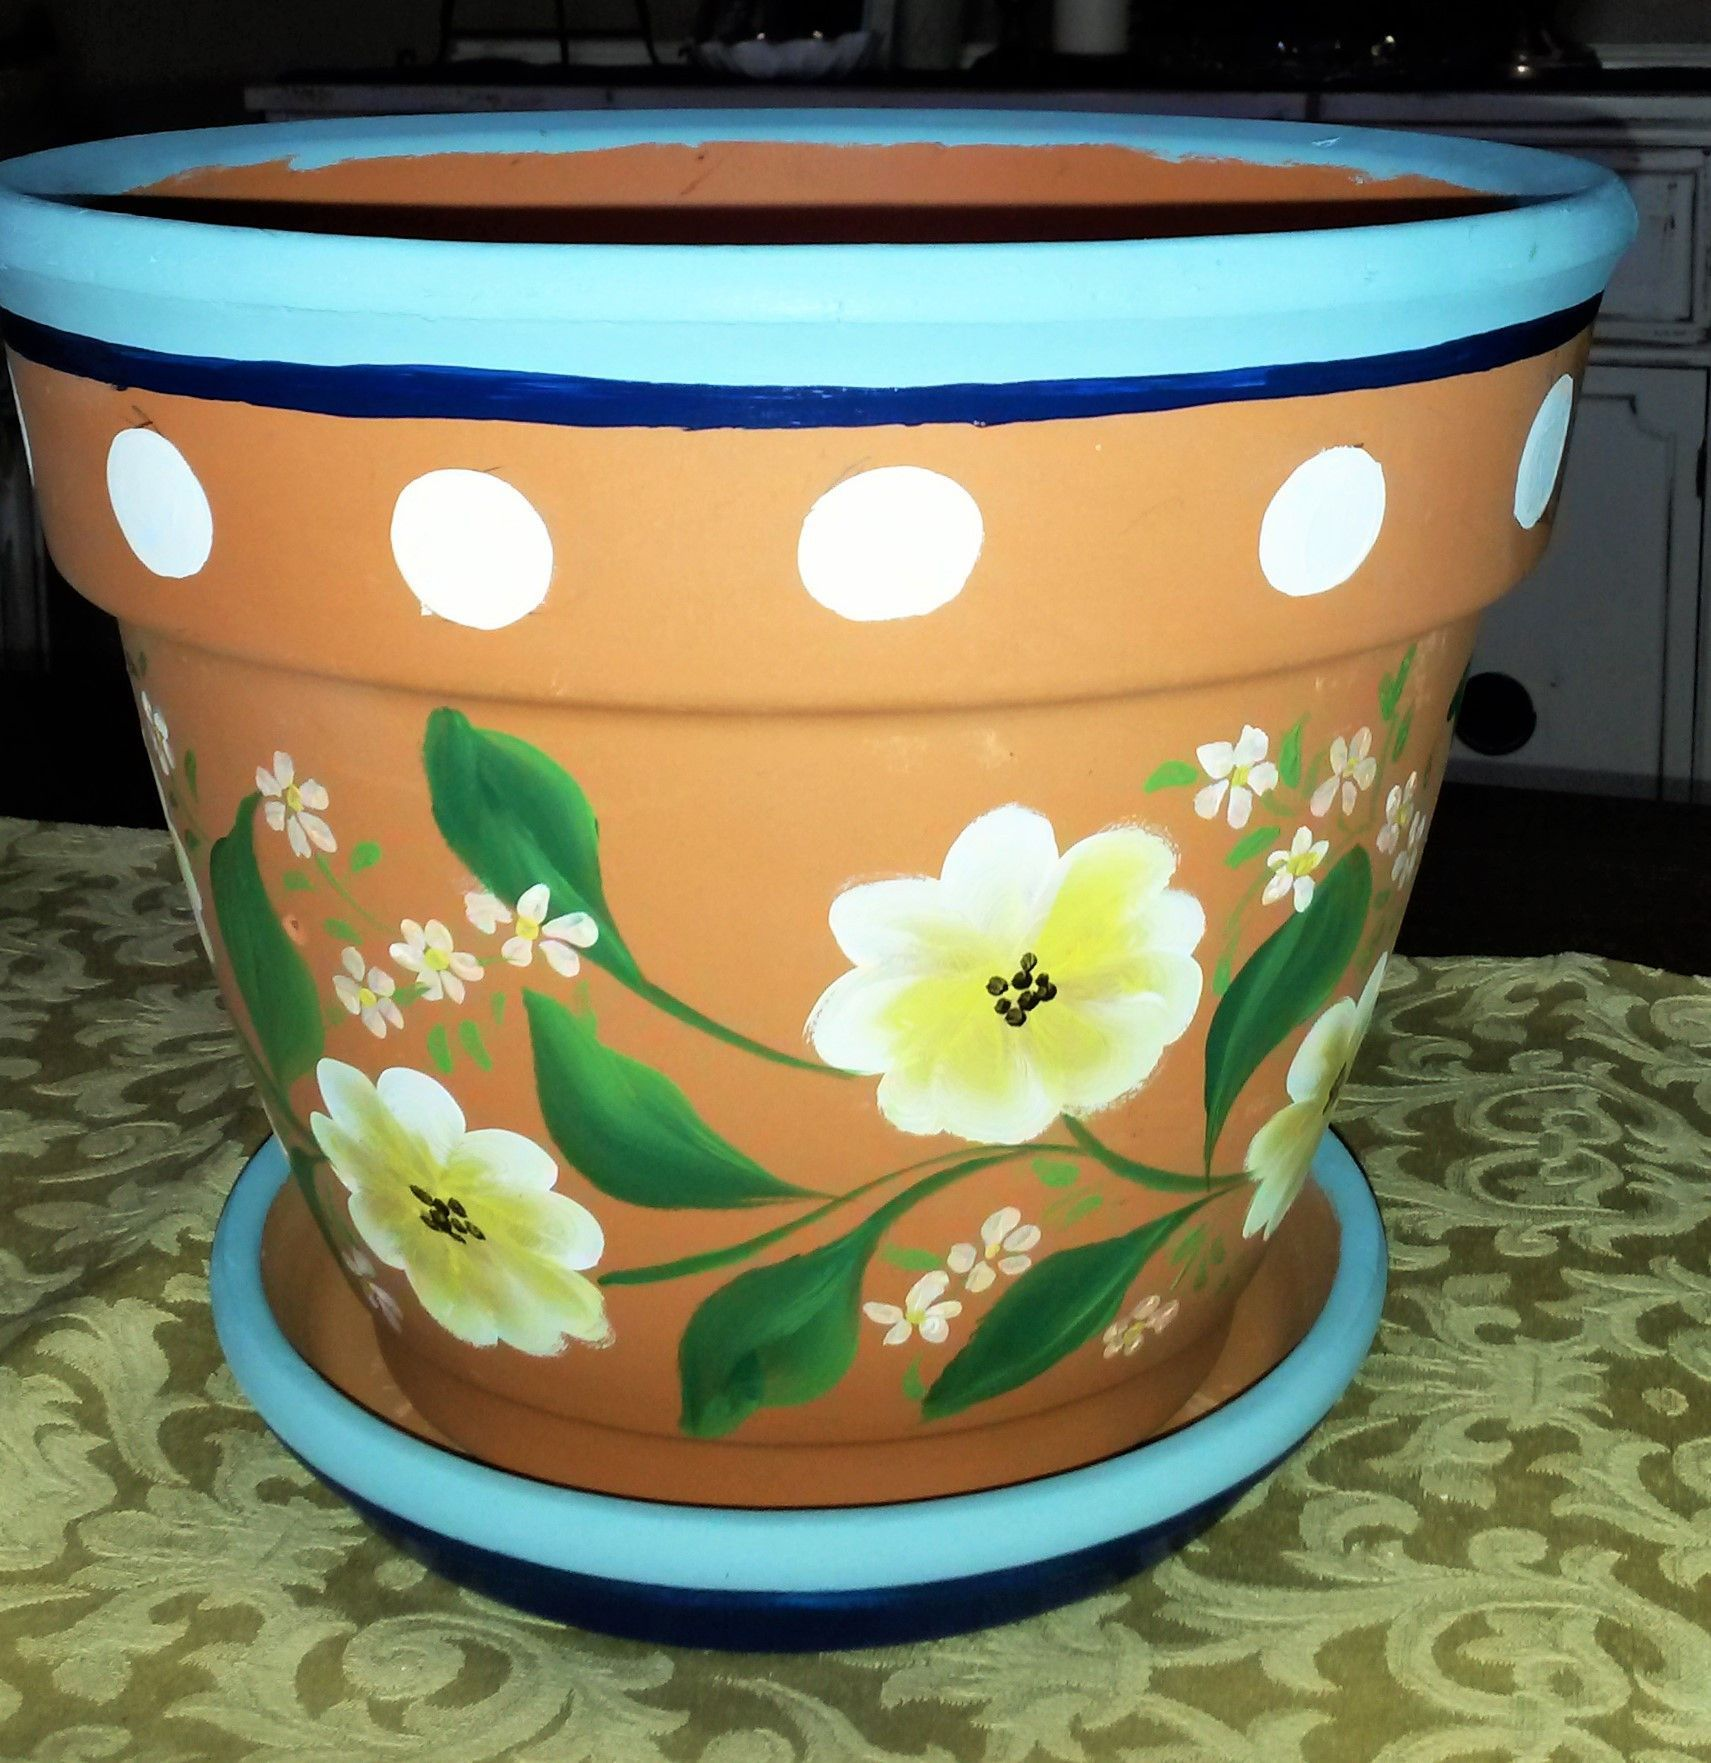 Tiestos Decorados 10 Quot Clay Flower Pot Manualidades Pinterest Tiesto